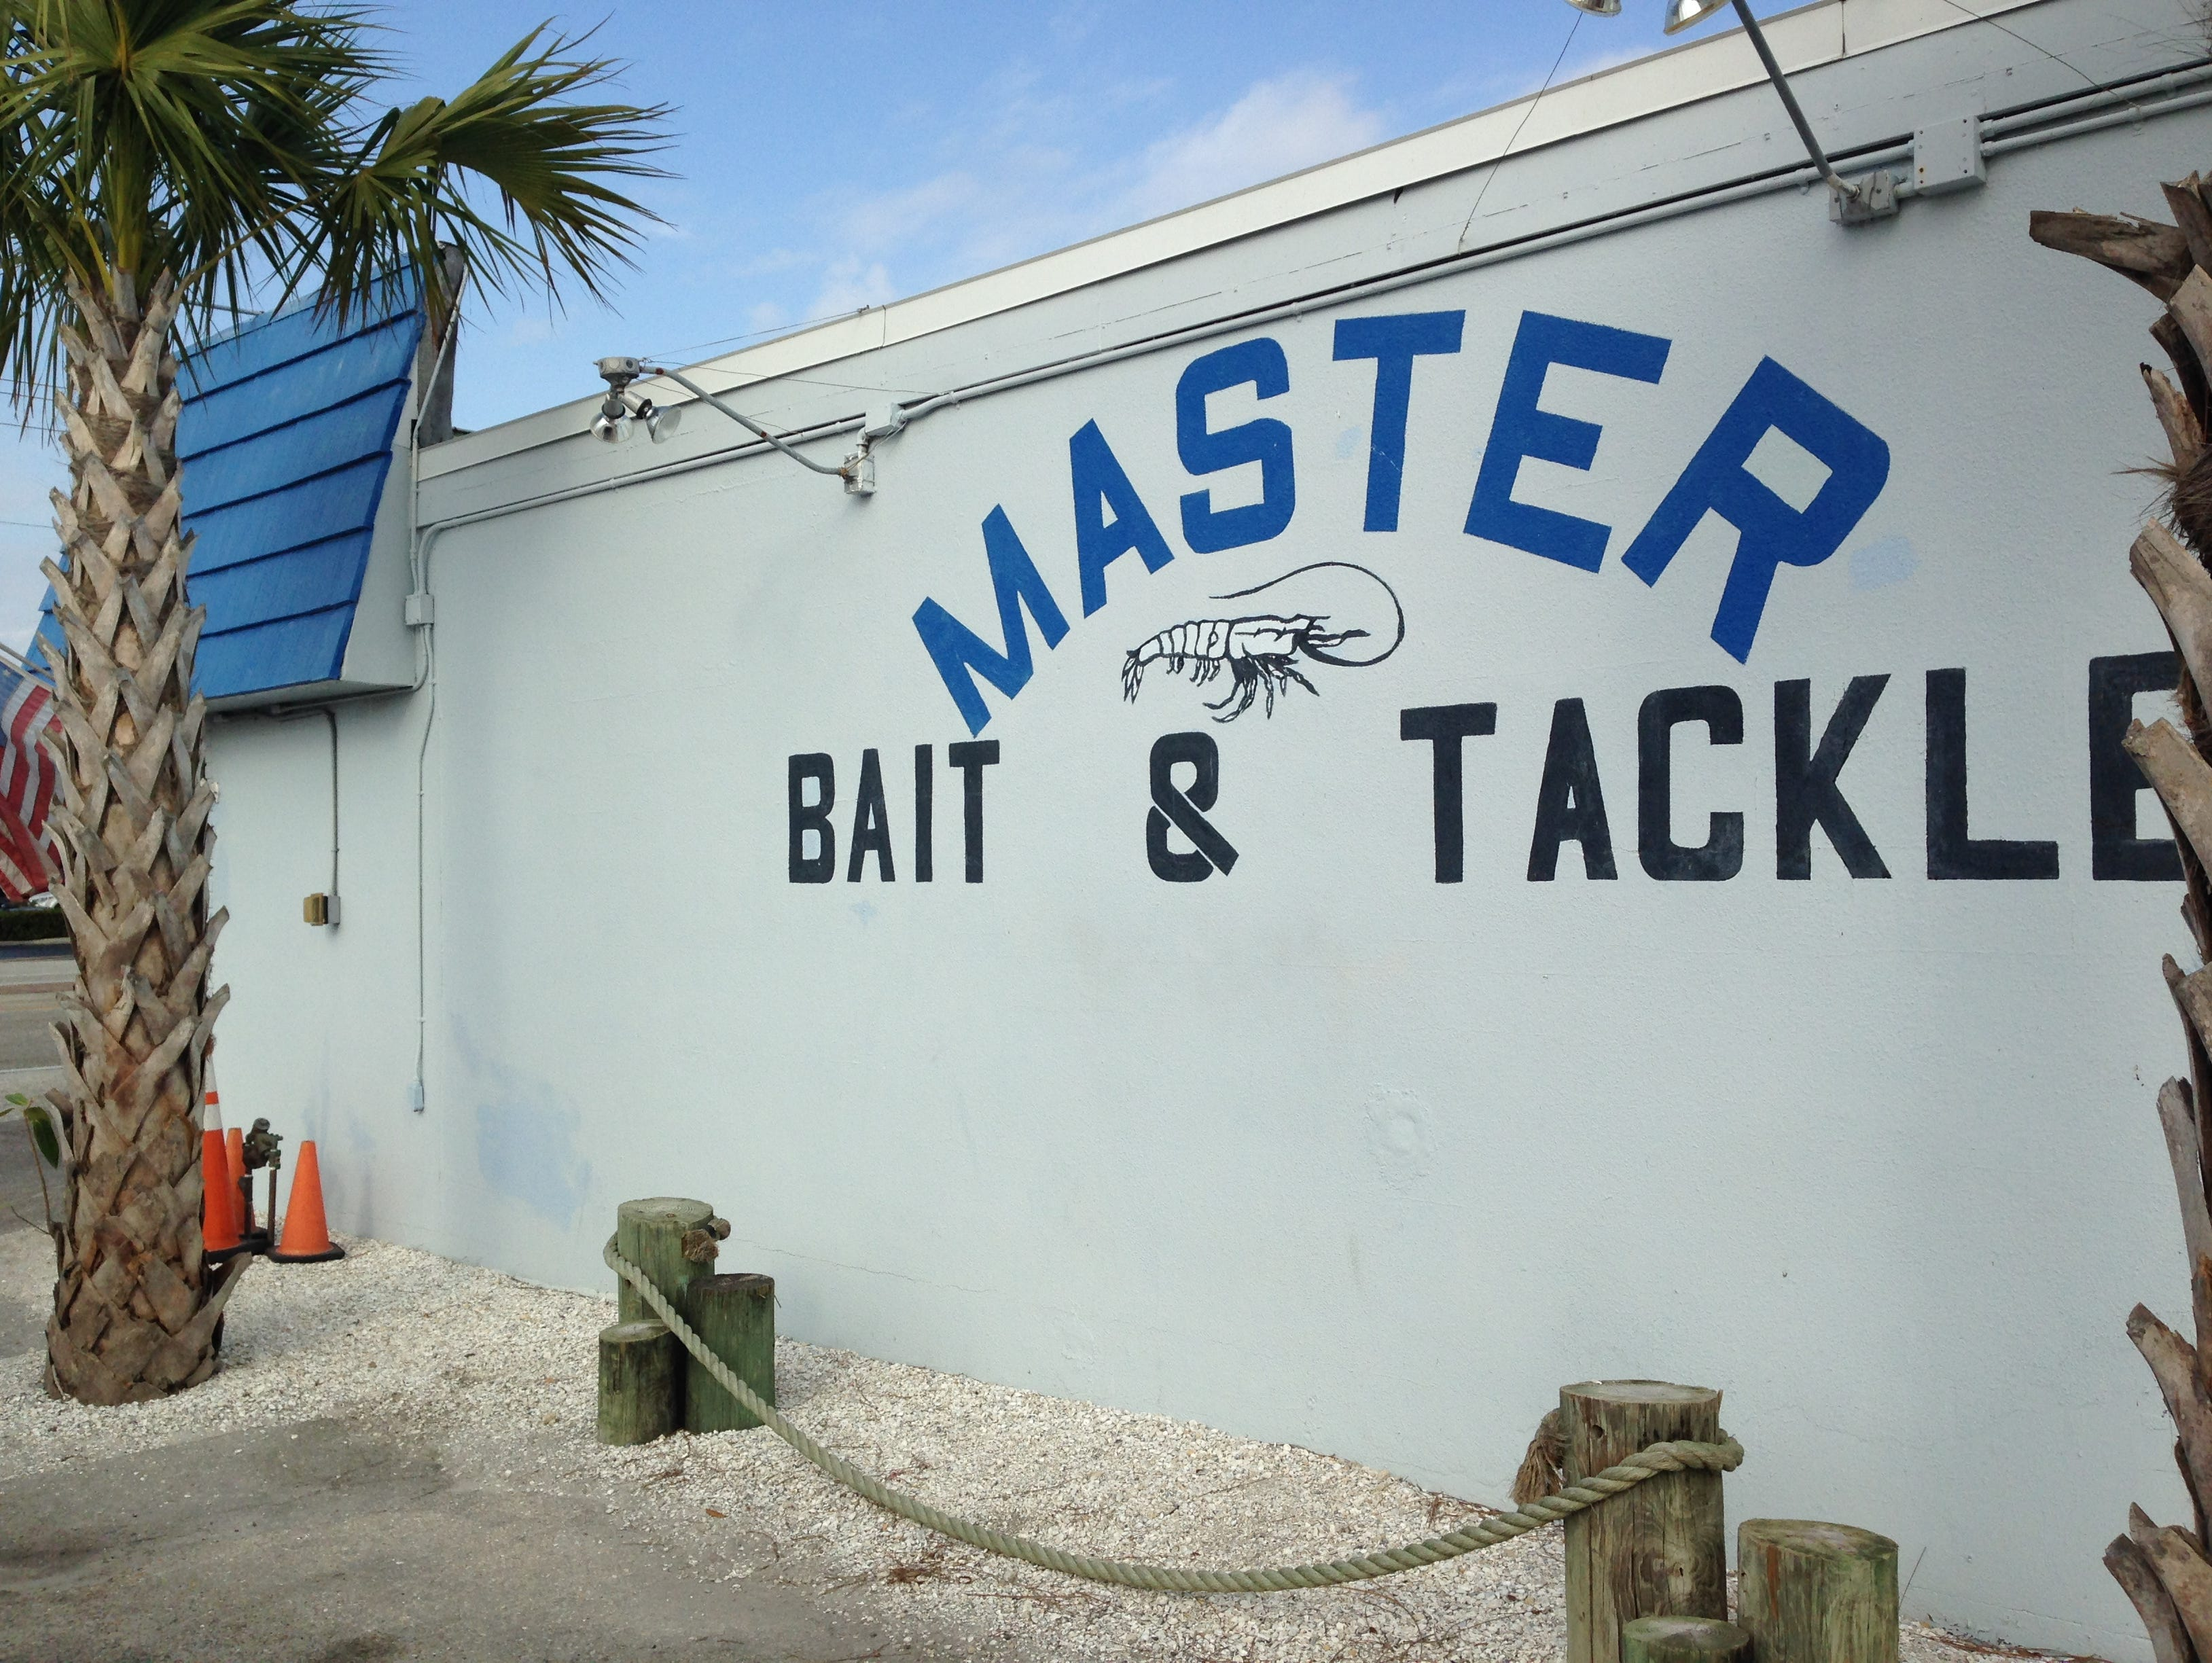 Something raunchy at this Florida bait shop.